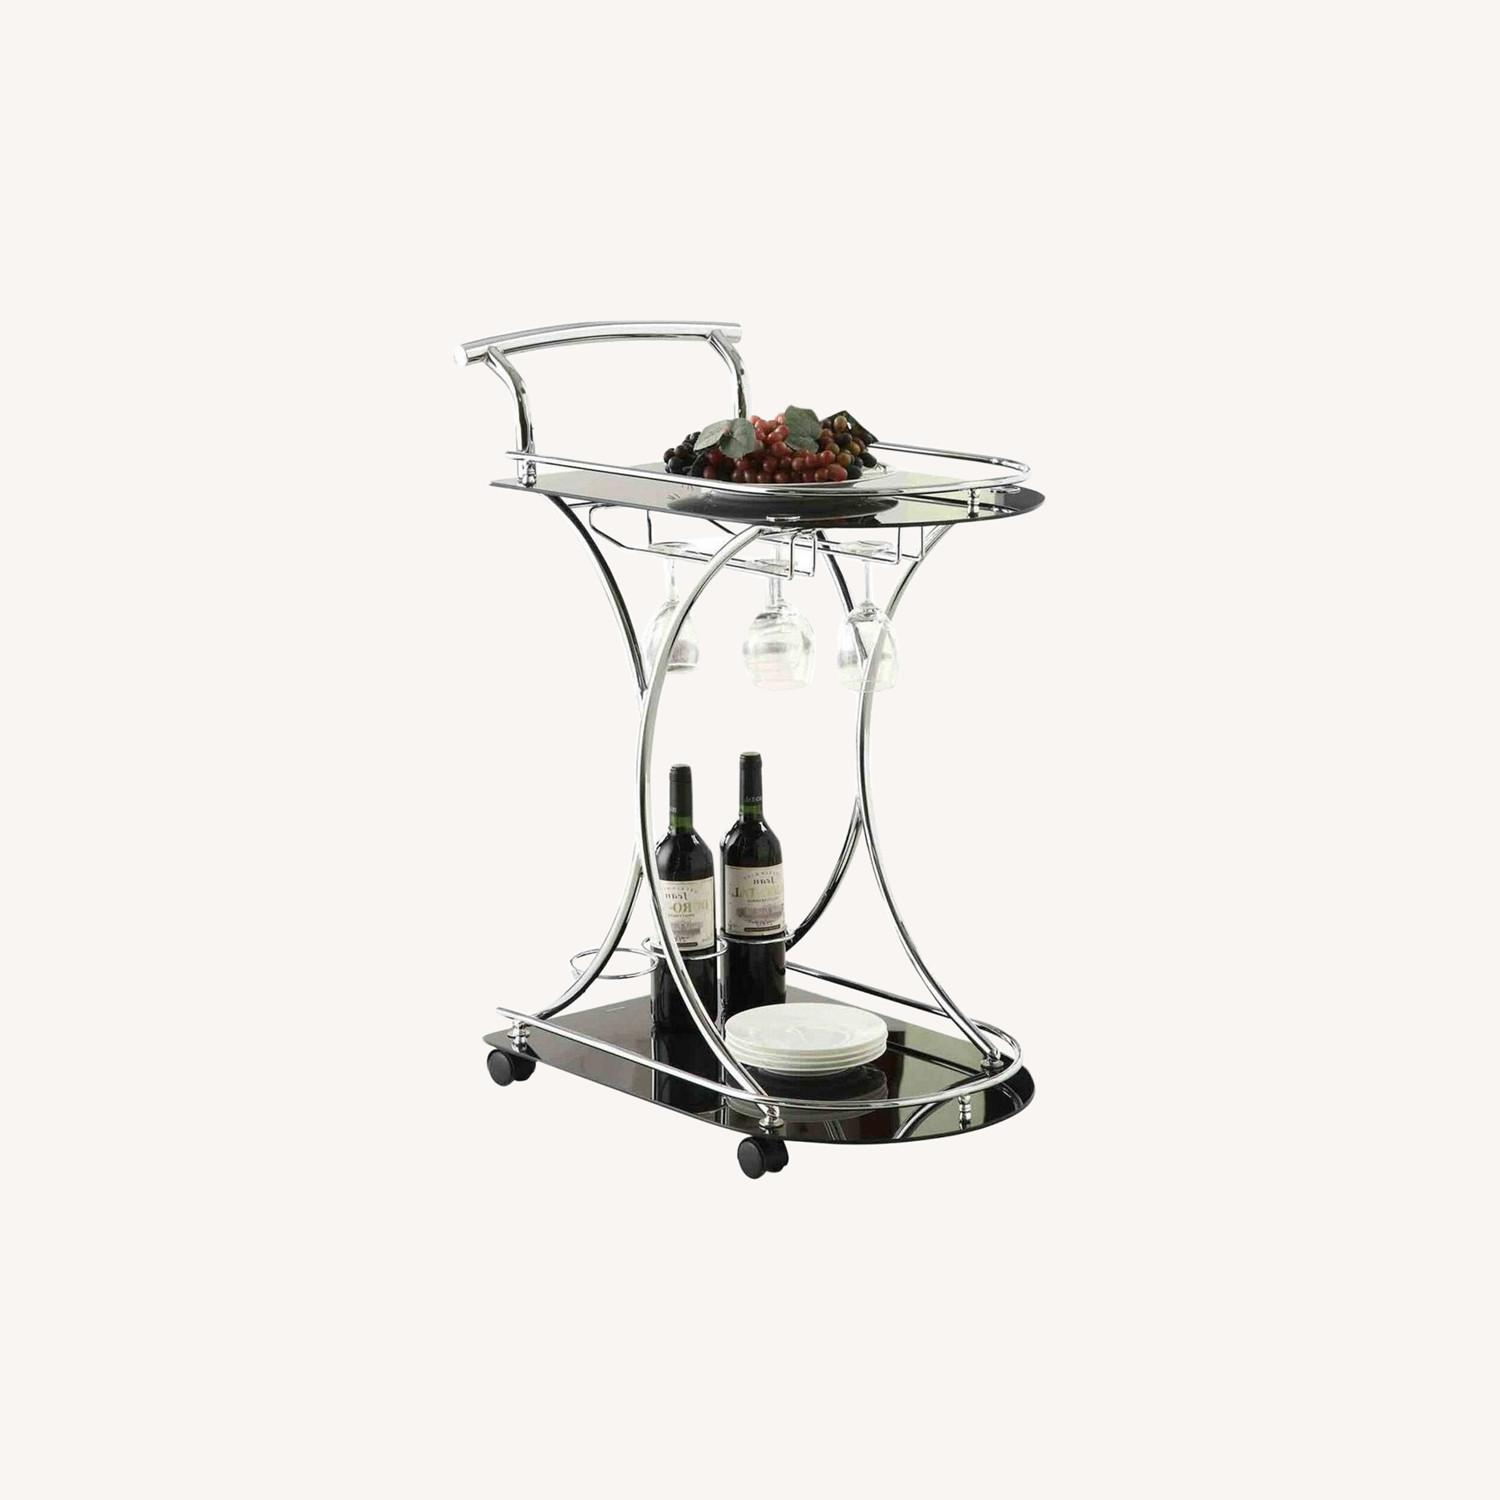 Serving Cart In Chrome Metal Finish W/ Wine Rack - image-5